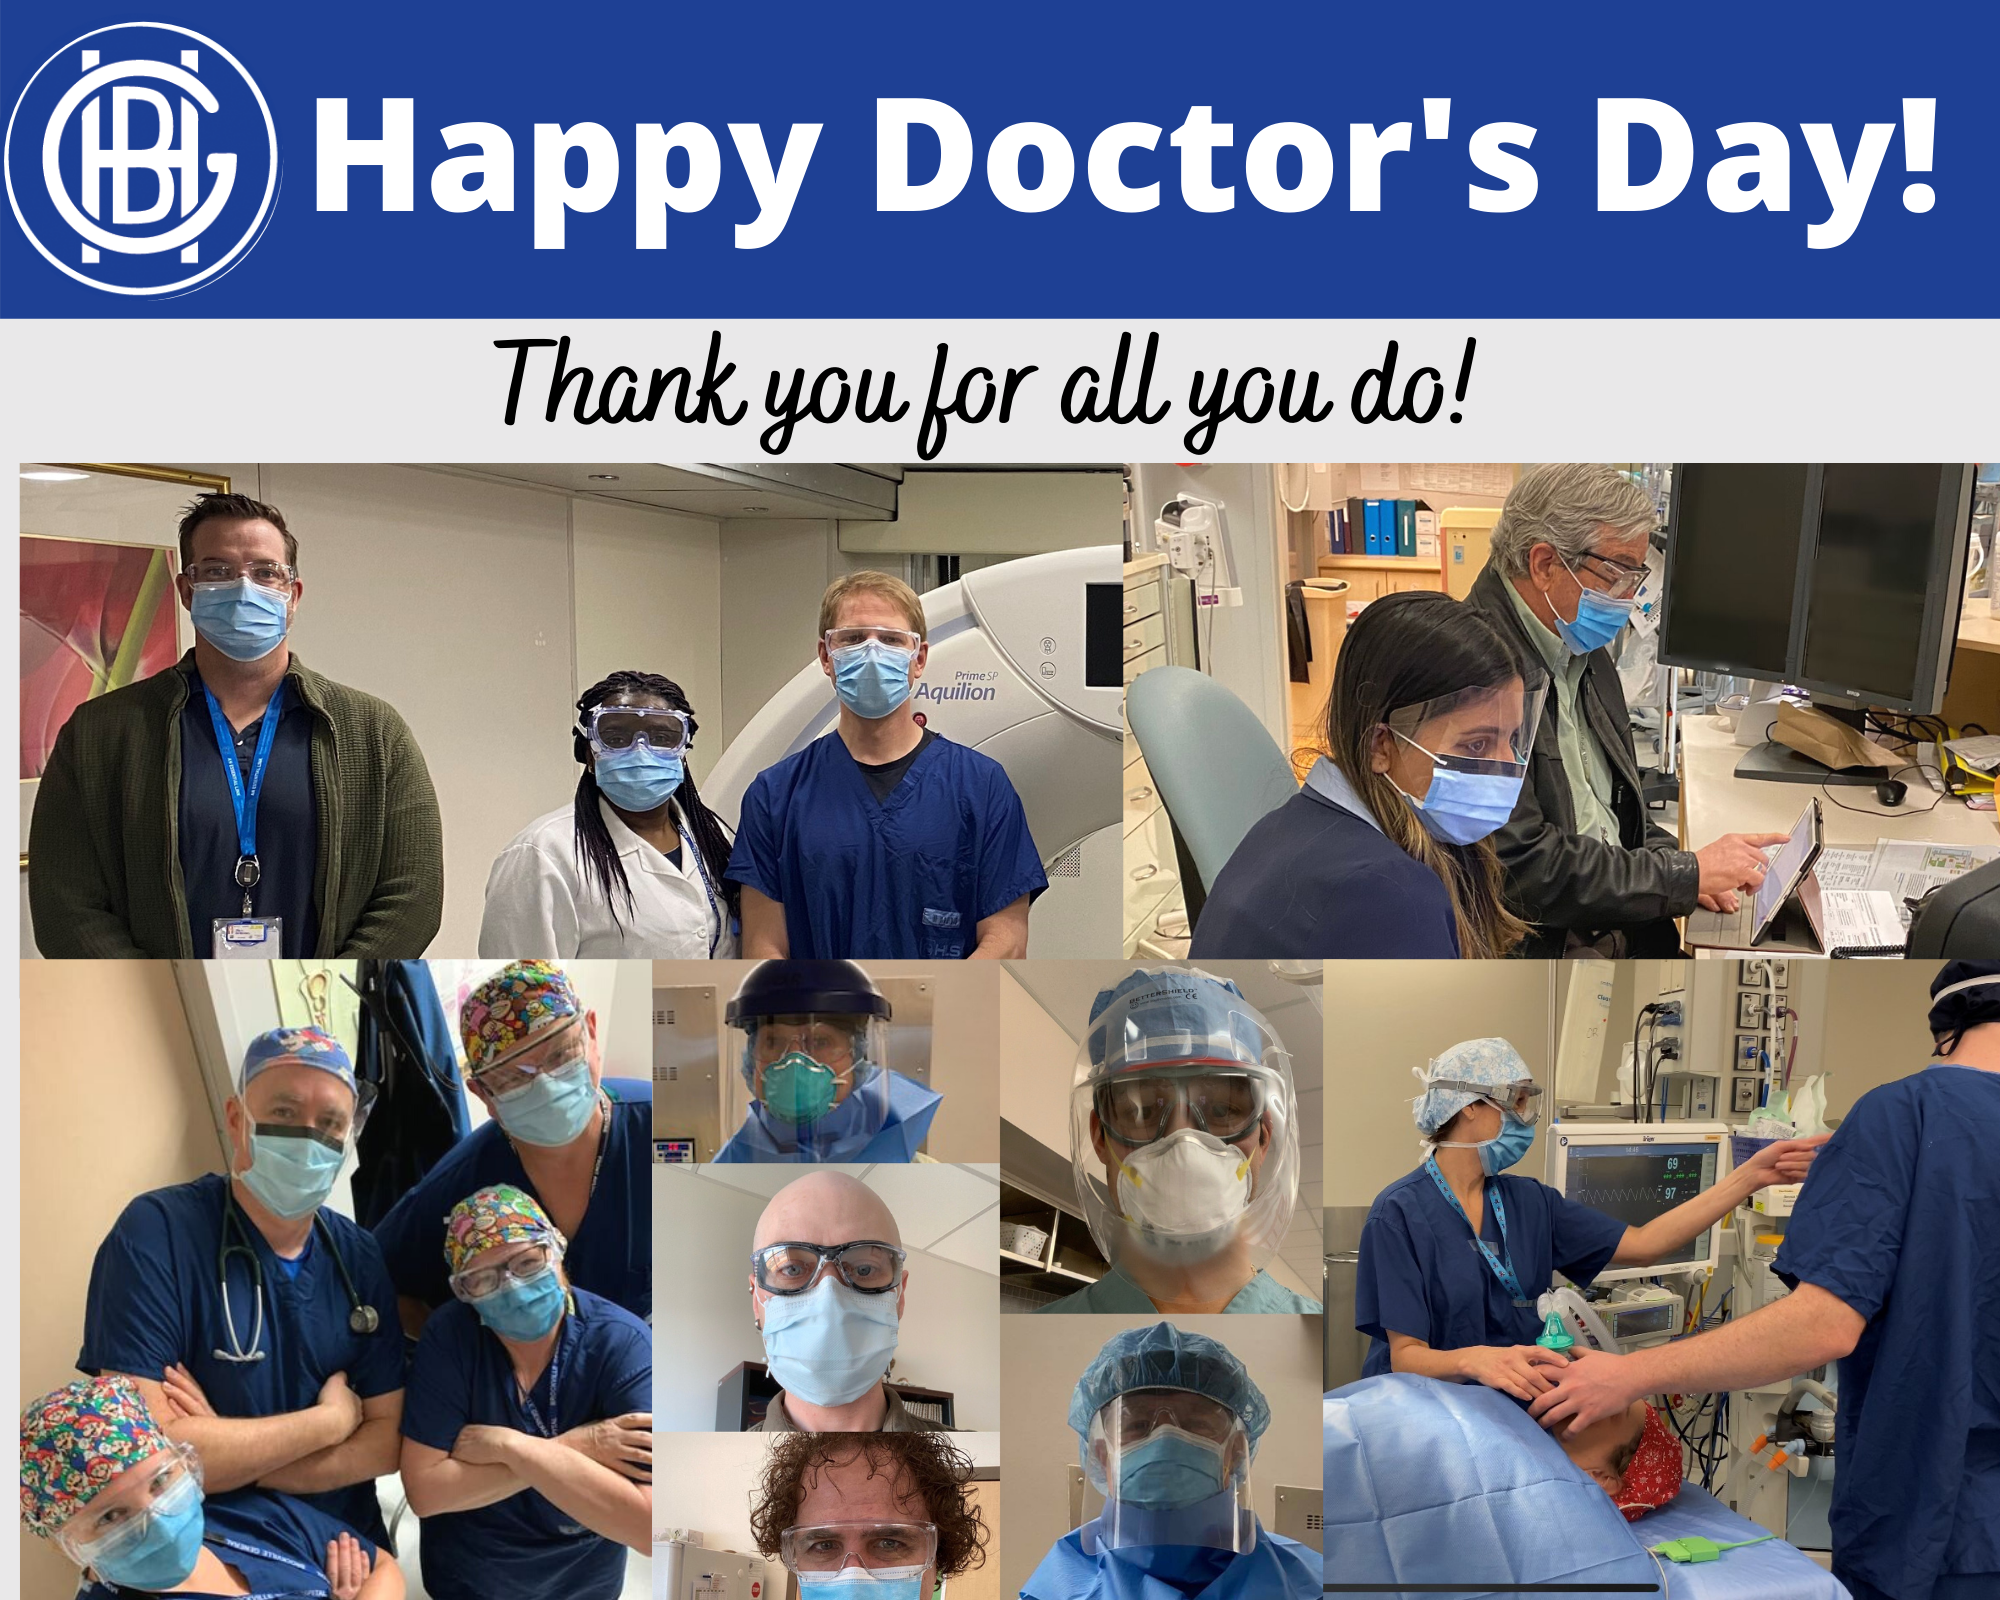 Doctor's Day 2021